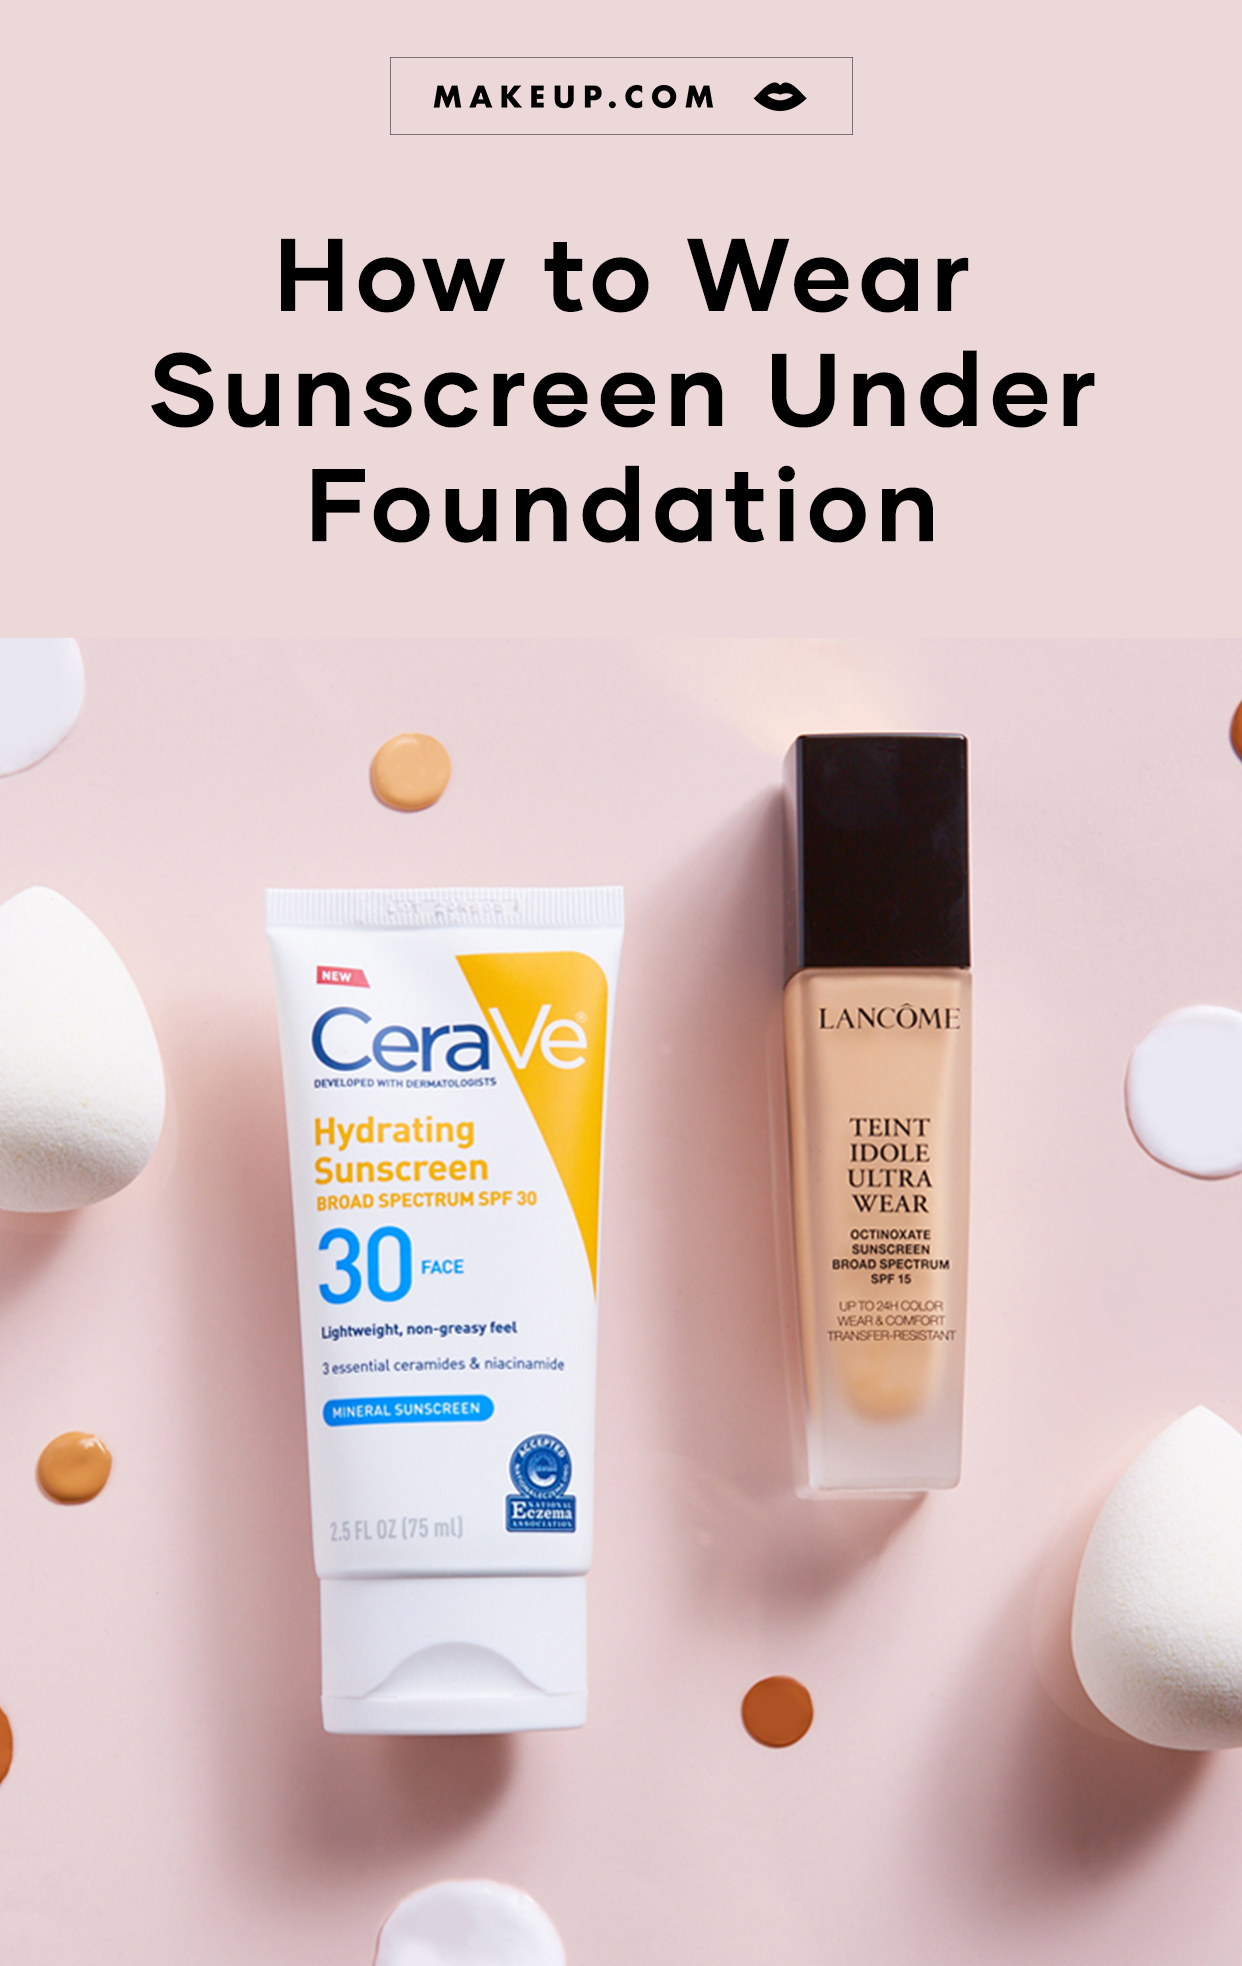 How To Wear Sunscreen Under Foundation According To An Expert Makeup Com By L Oreal In 2020 Makeup Tips For Dry Skin Sunscreen Face Lotion Face Products Skincare